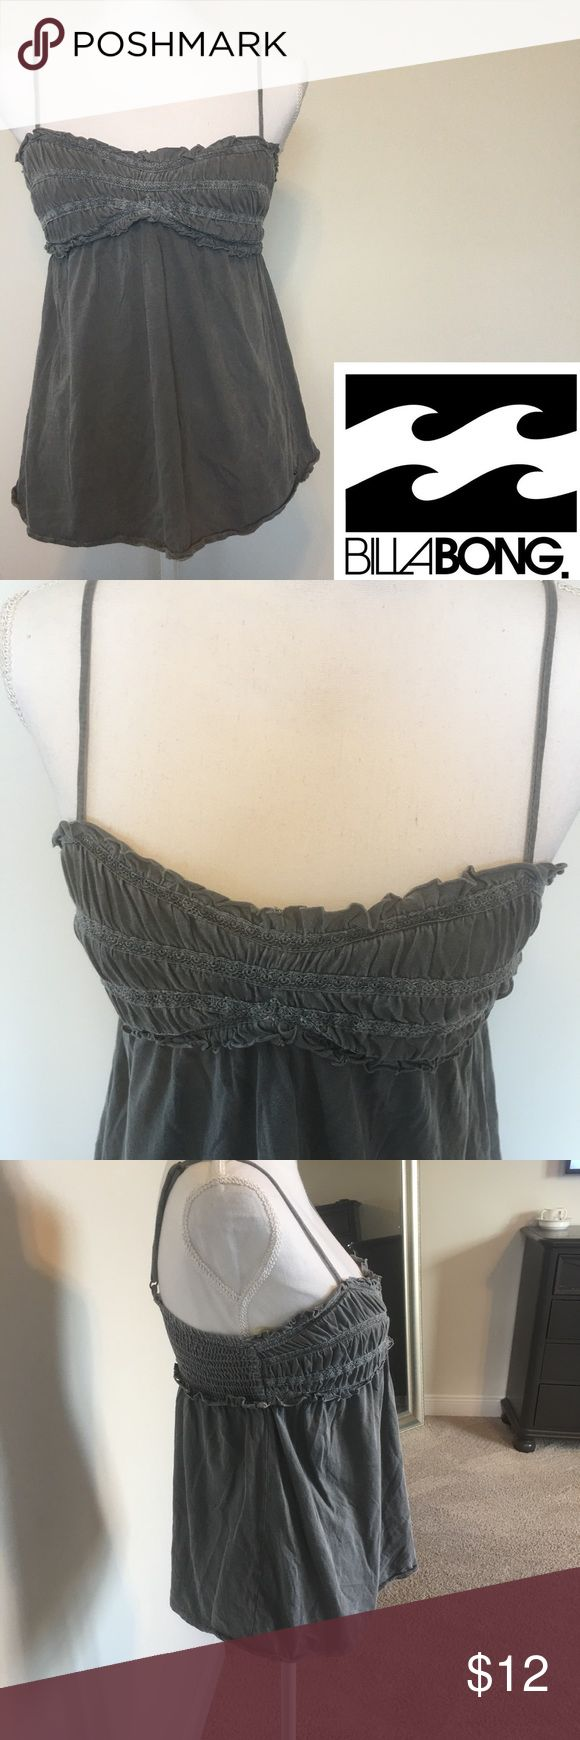 Billabong Distressed Grey Camisole Top This top features adjustable spaghetti straps and ruched embellishments bra top. Back is elasticized and logo on side. Sz M 100% Cotton. Billabong Tops Camisoles